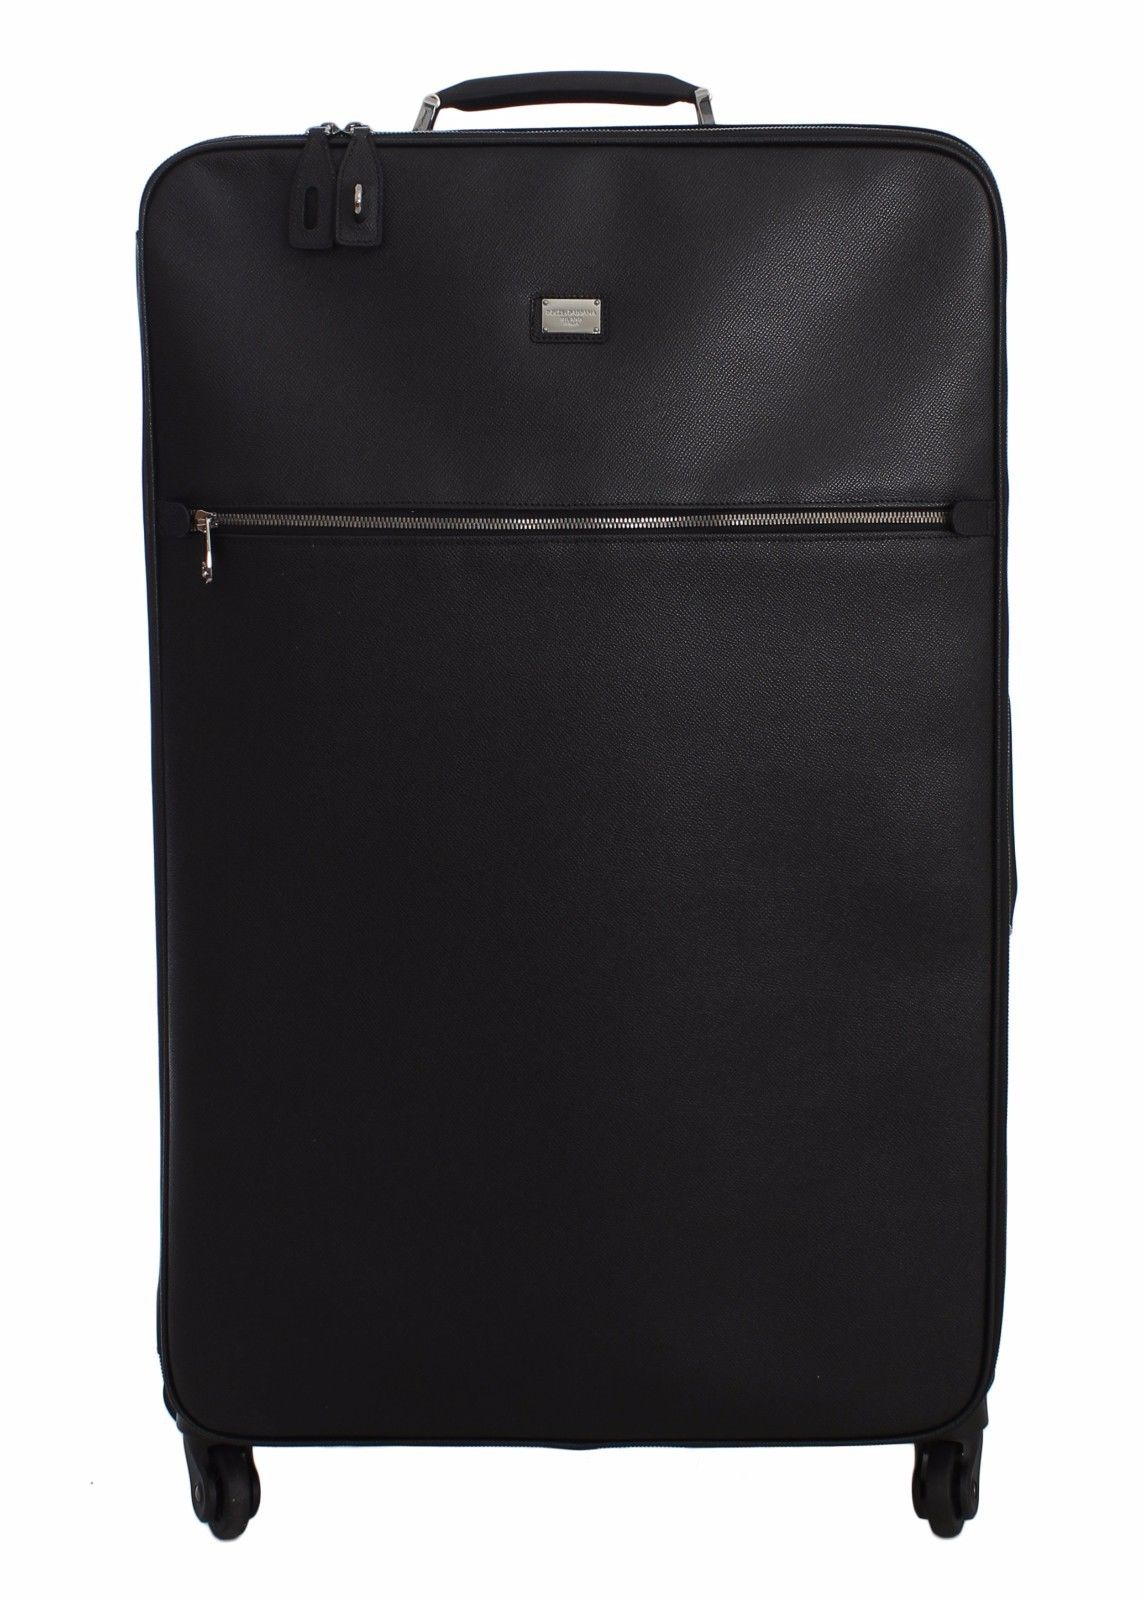 4d2871c20b7e Luggage Bag Black Leather Travel Suitcase Trolley